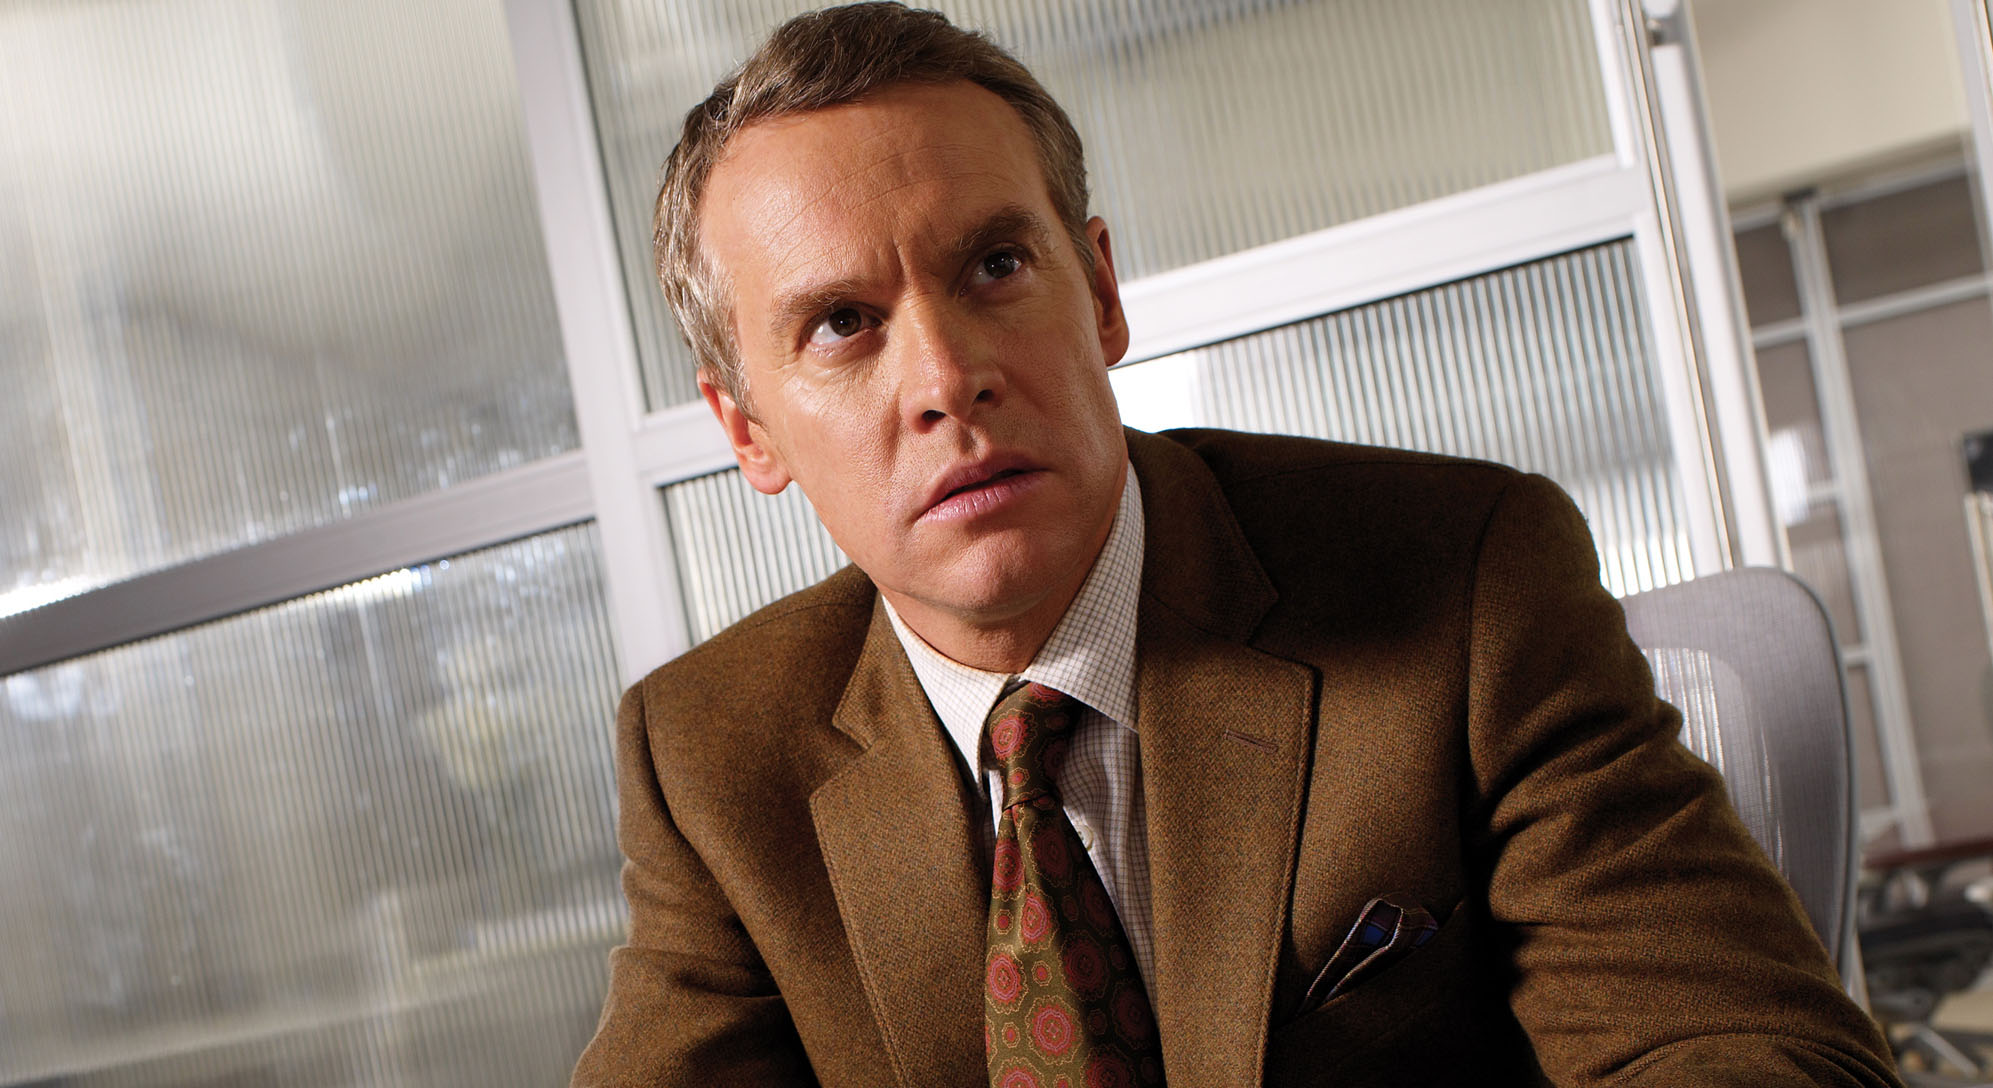 Tate Donovan HQ wallpapers